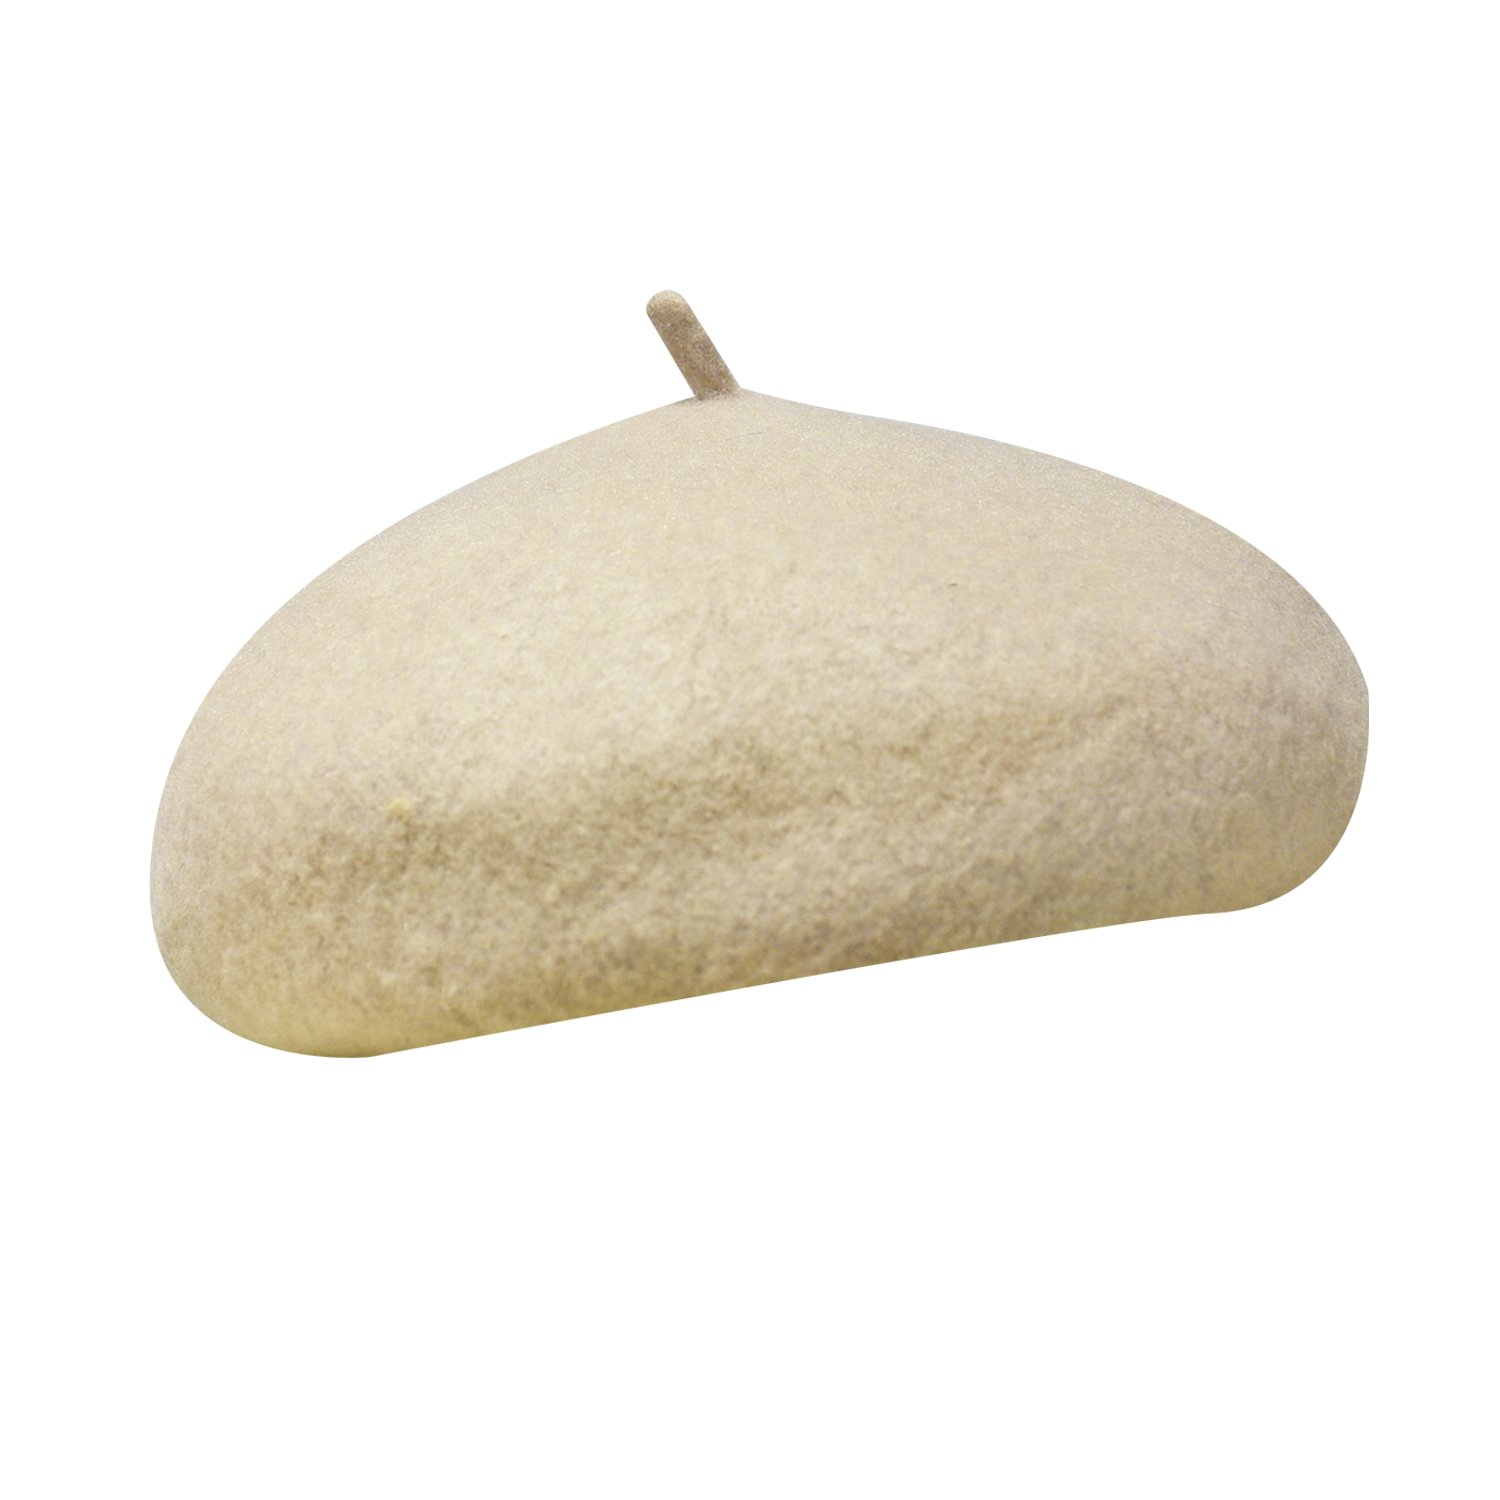 Luxspire Women's Solid Color Casual Classic Soft Woolen French Style Beret Cap Winter Warm Hat, Beige